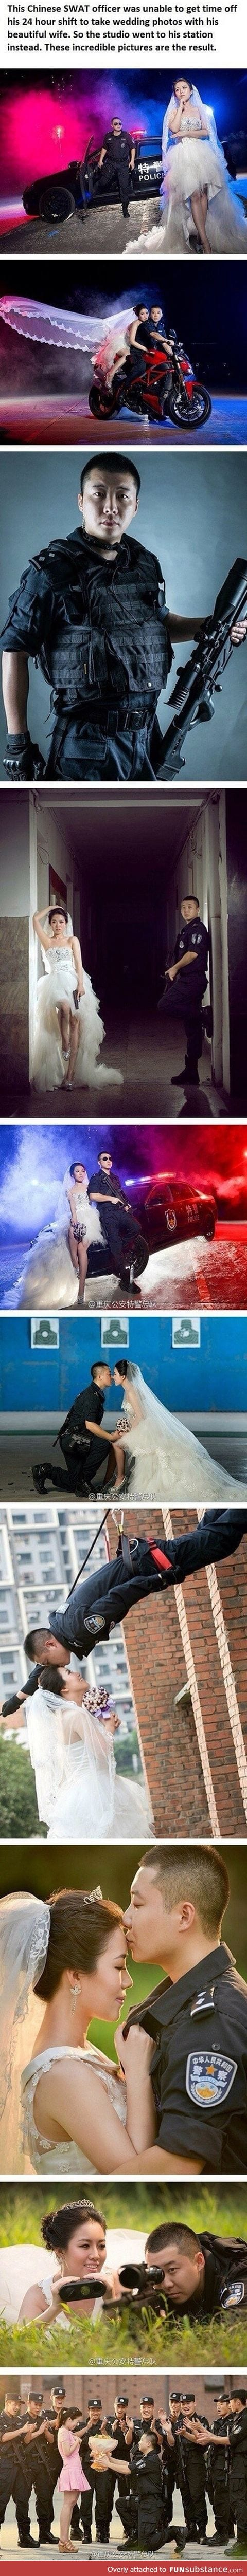 A police marriage photo shoot